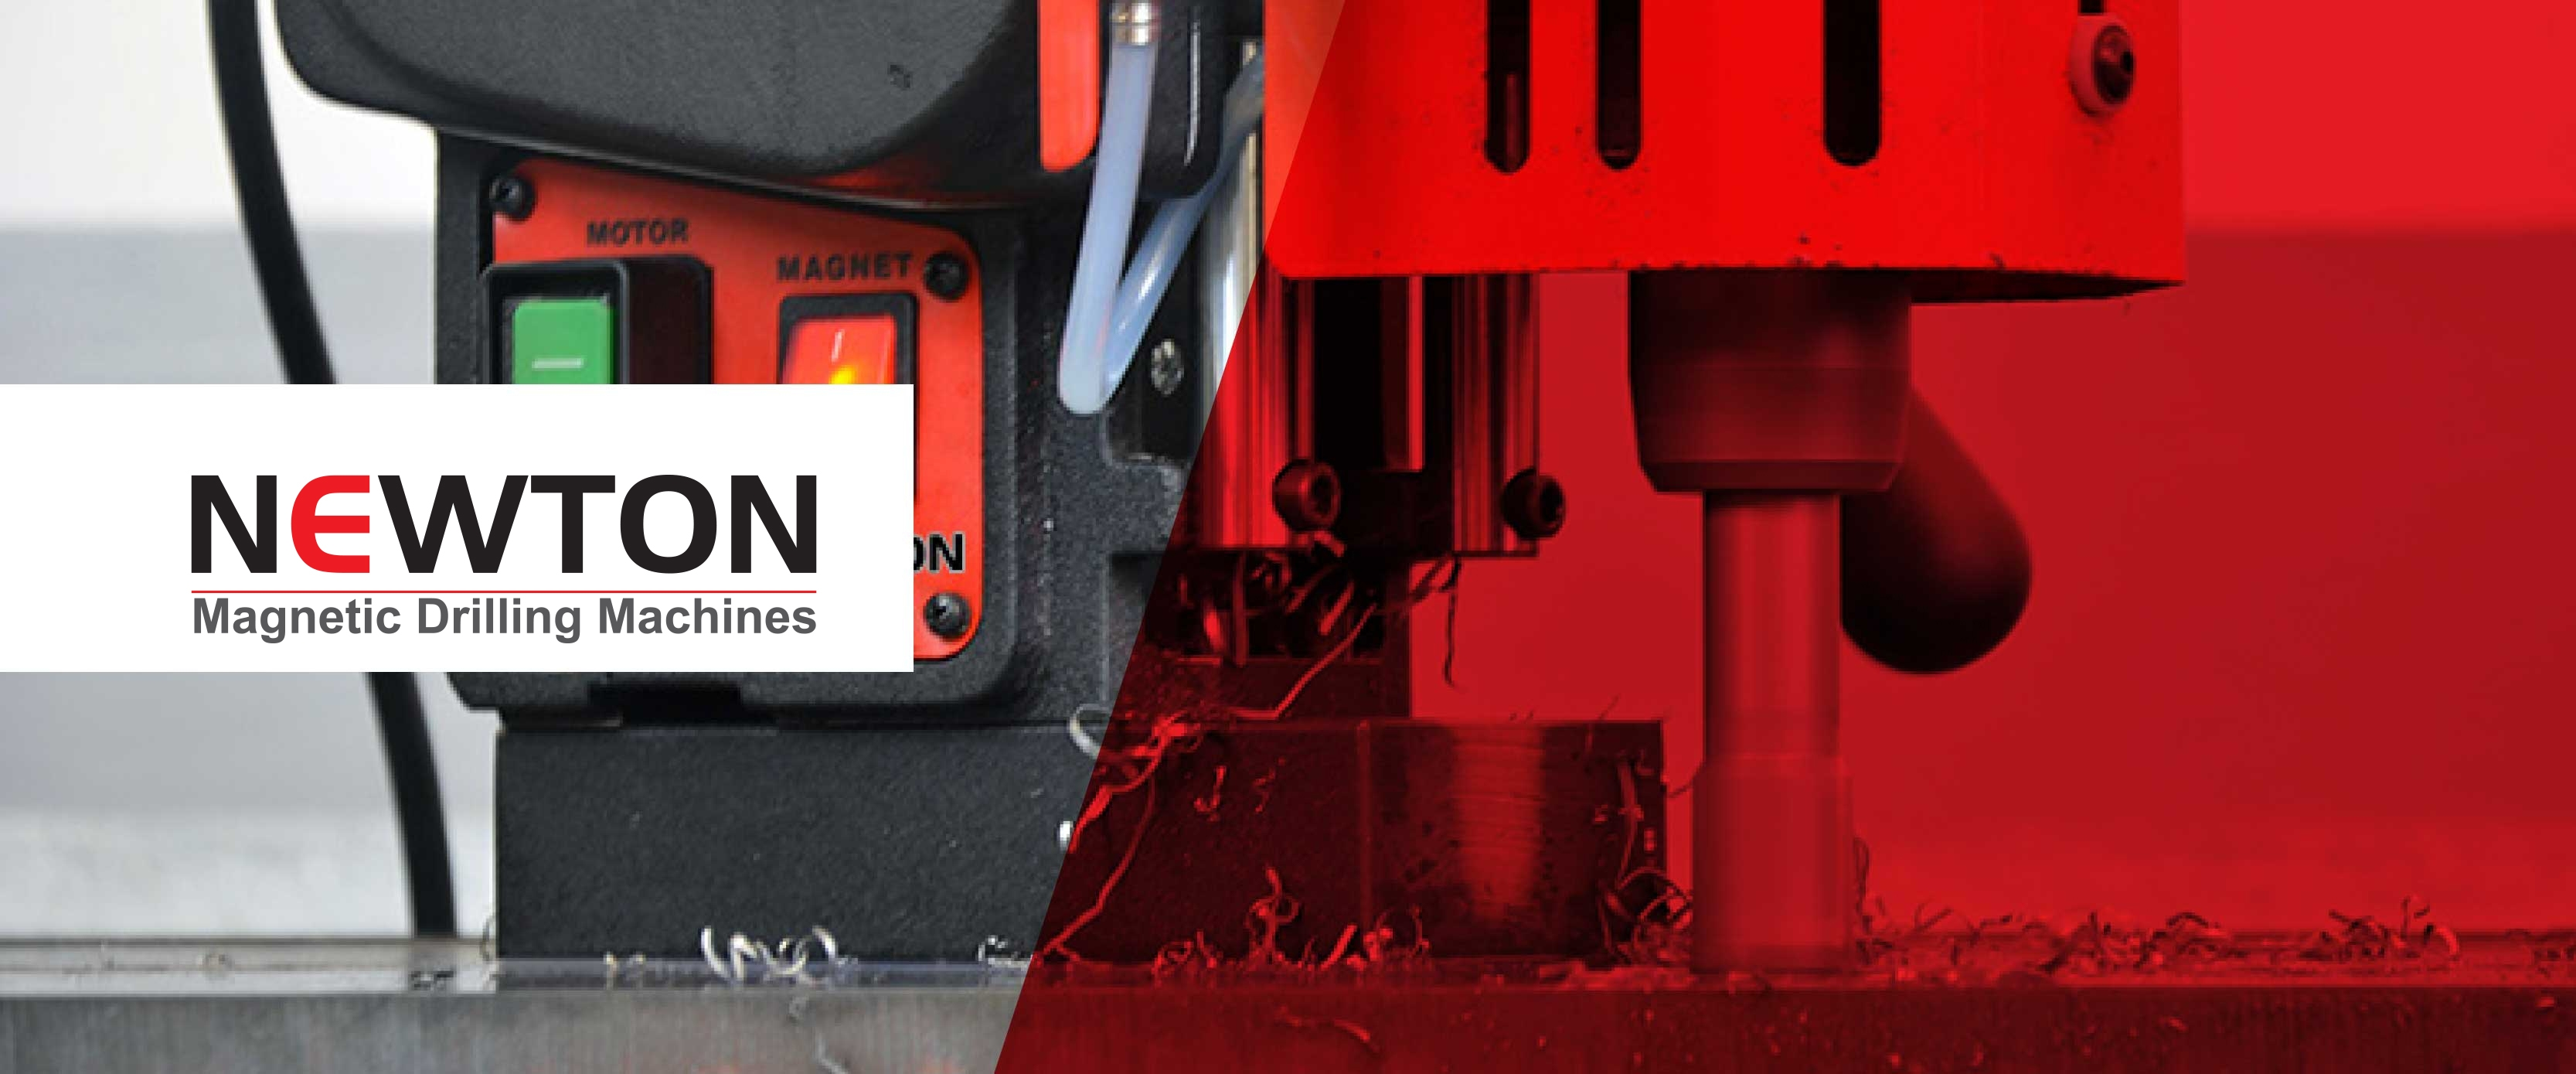 NEWTON MAGNETIC DRILLING